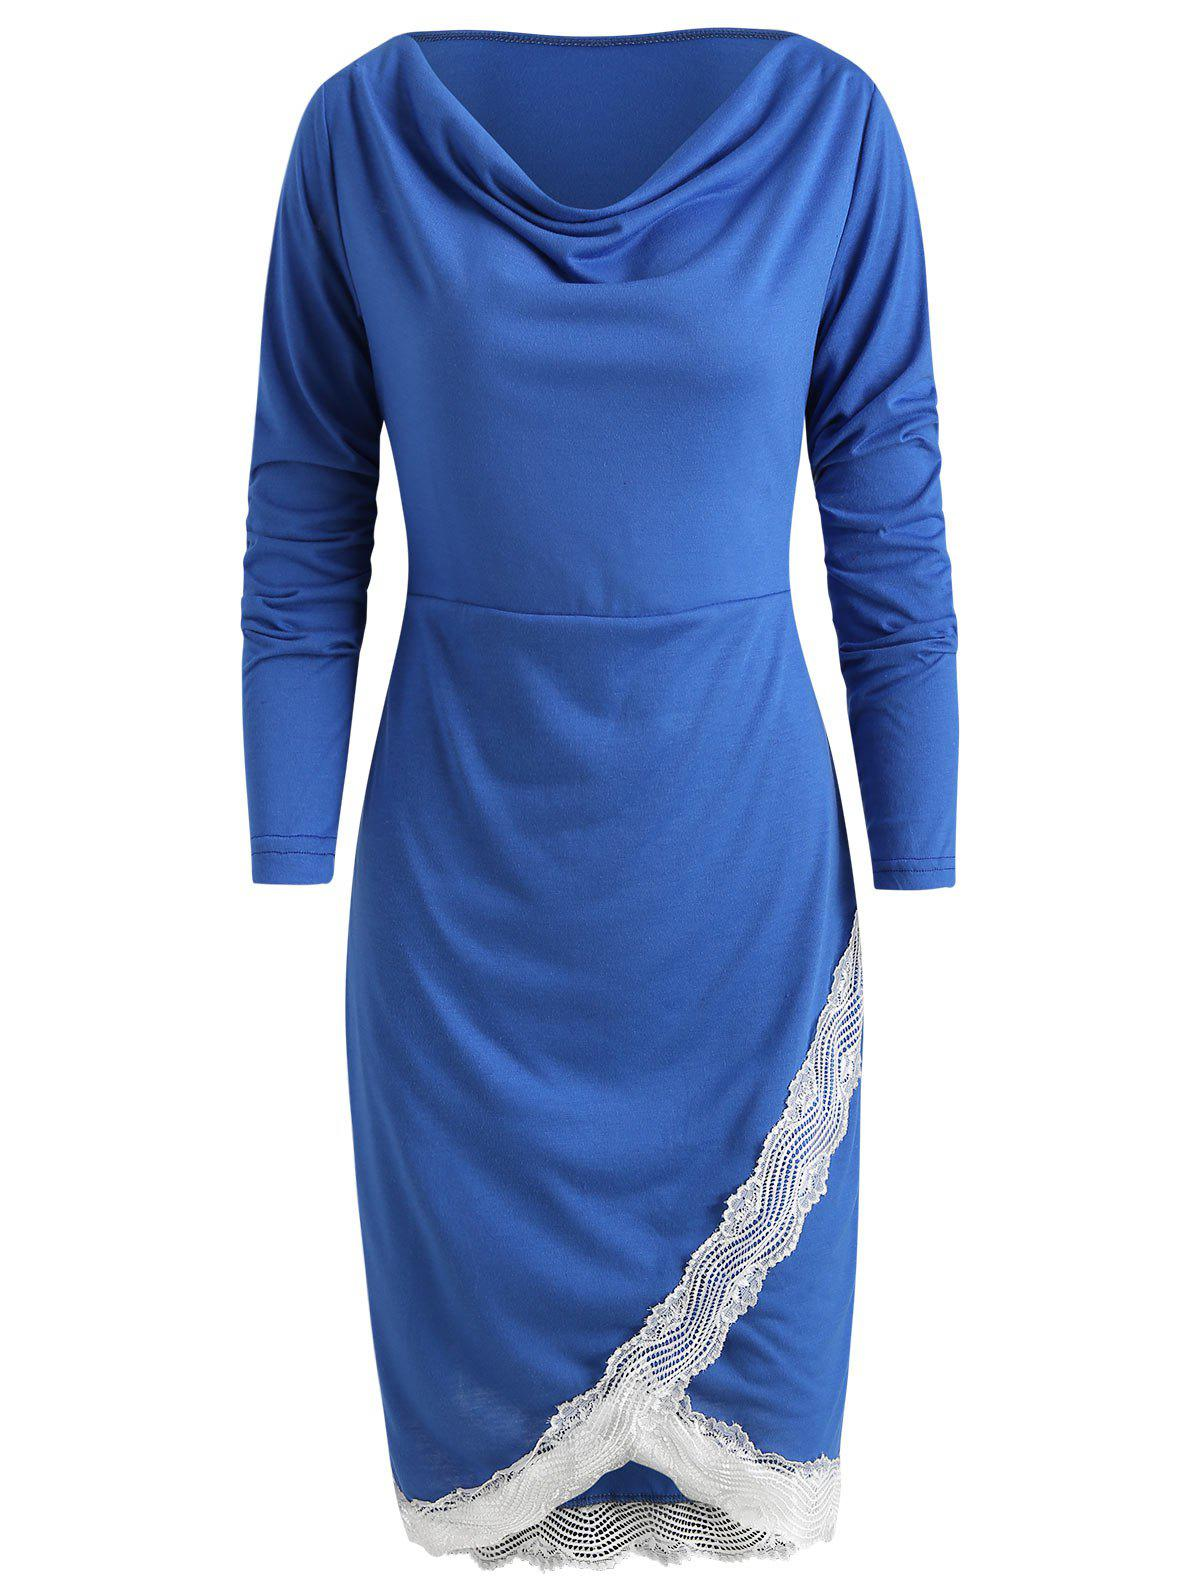 Lace Trim Sheath Dress - COBALT BLUE XL